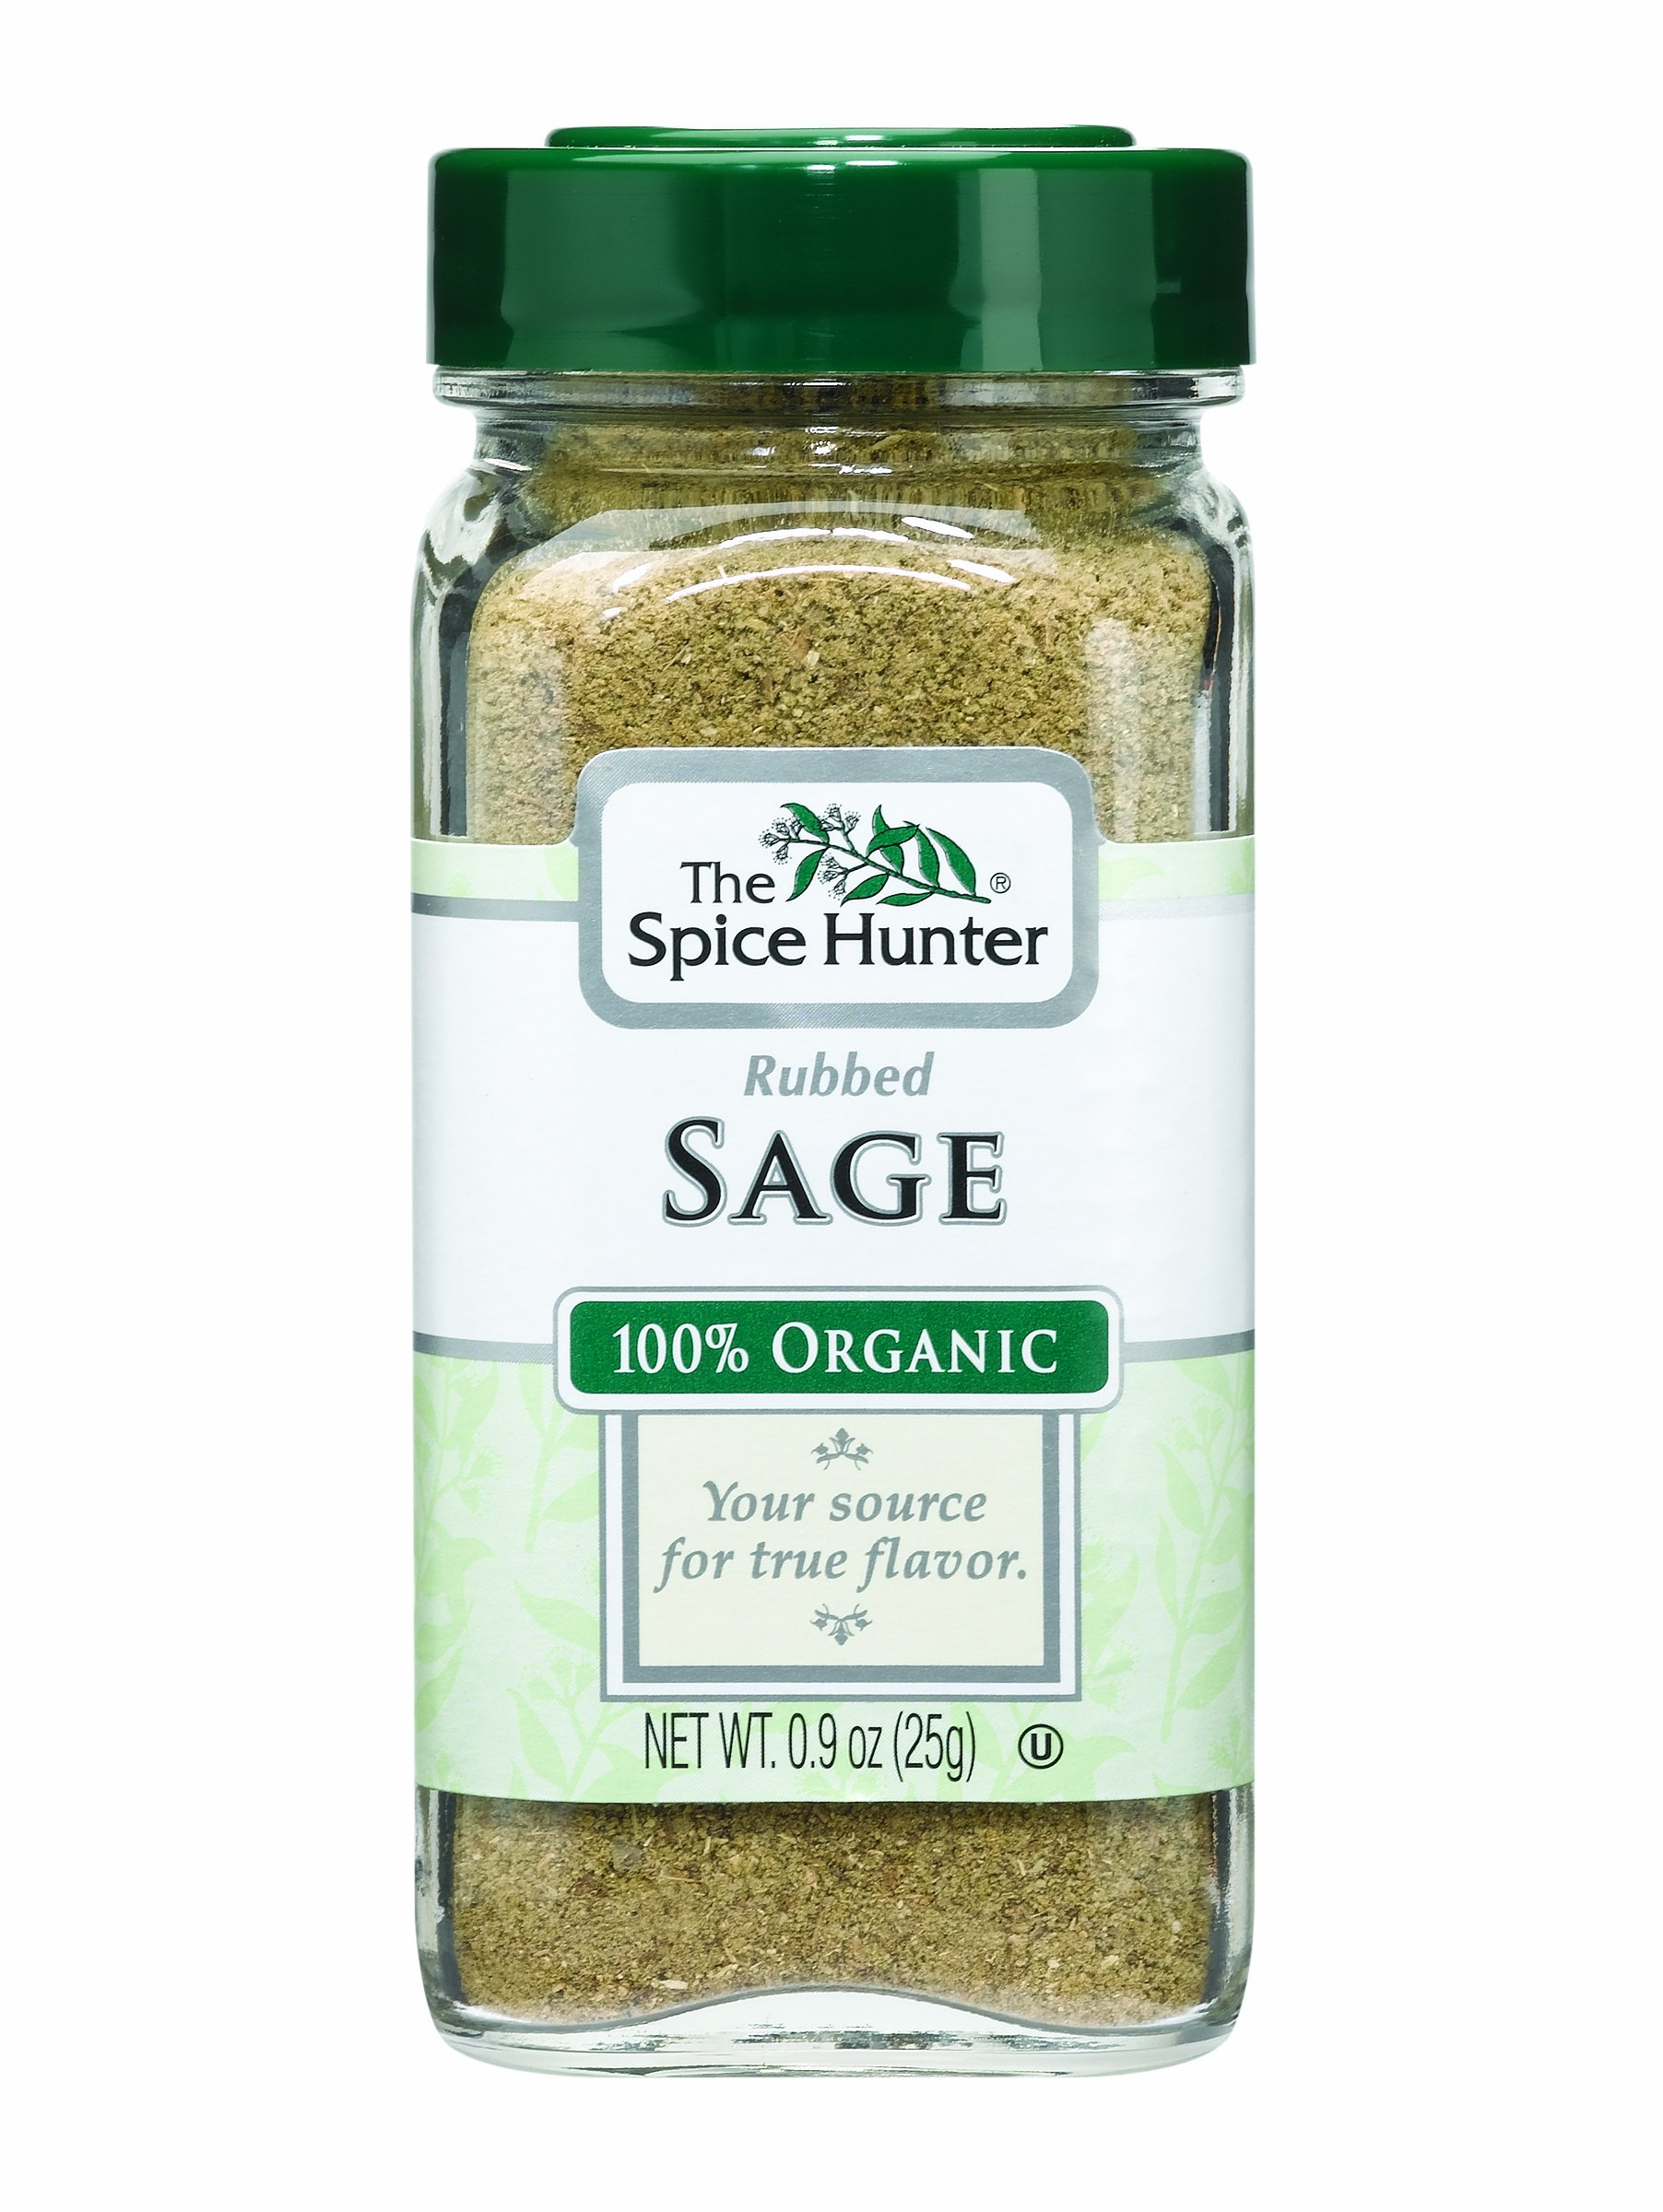 The Spice Hunter Sage, Rubbed, Organic, 0.9-Ounce Jars (Pack of 6)